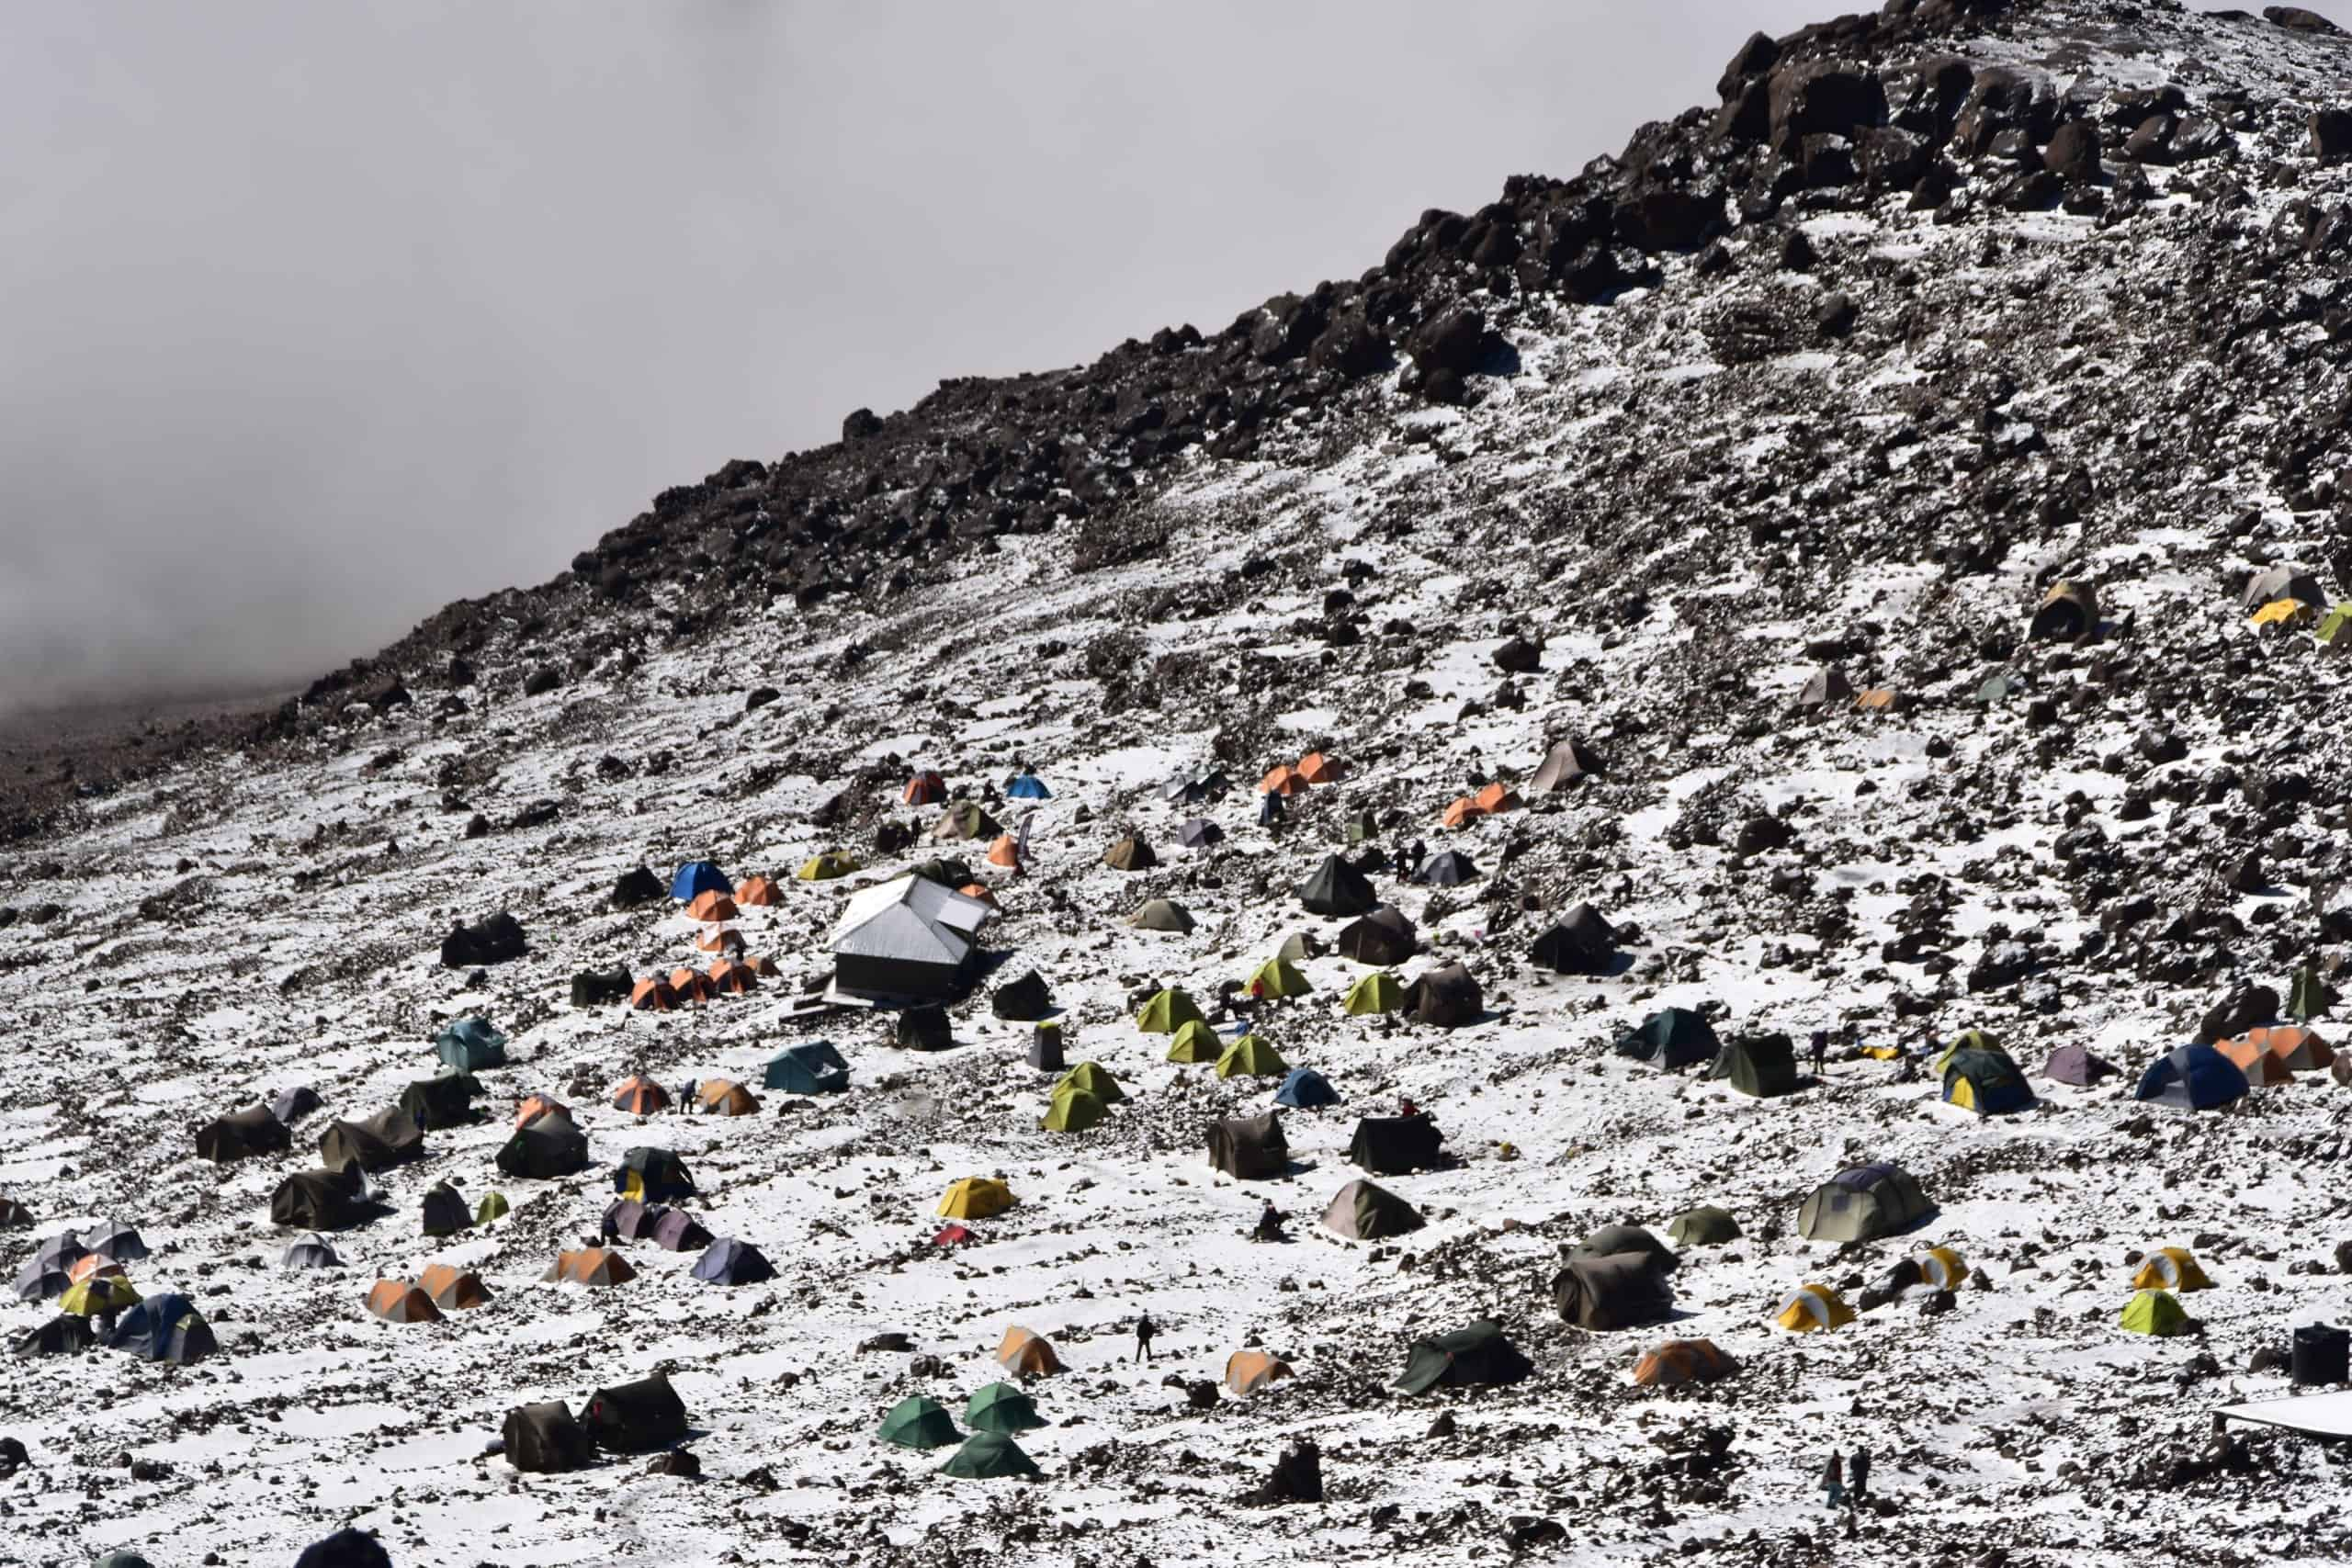 Kilimanjaro's rocky, chilly Barafu Campsite, with tents dotted here and there and the ranger's hut in the middle, as seen from the trail above, with snow dusting the ground.